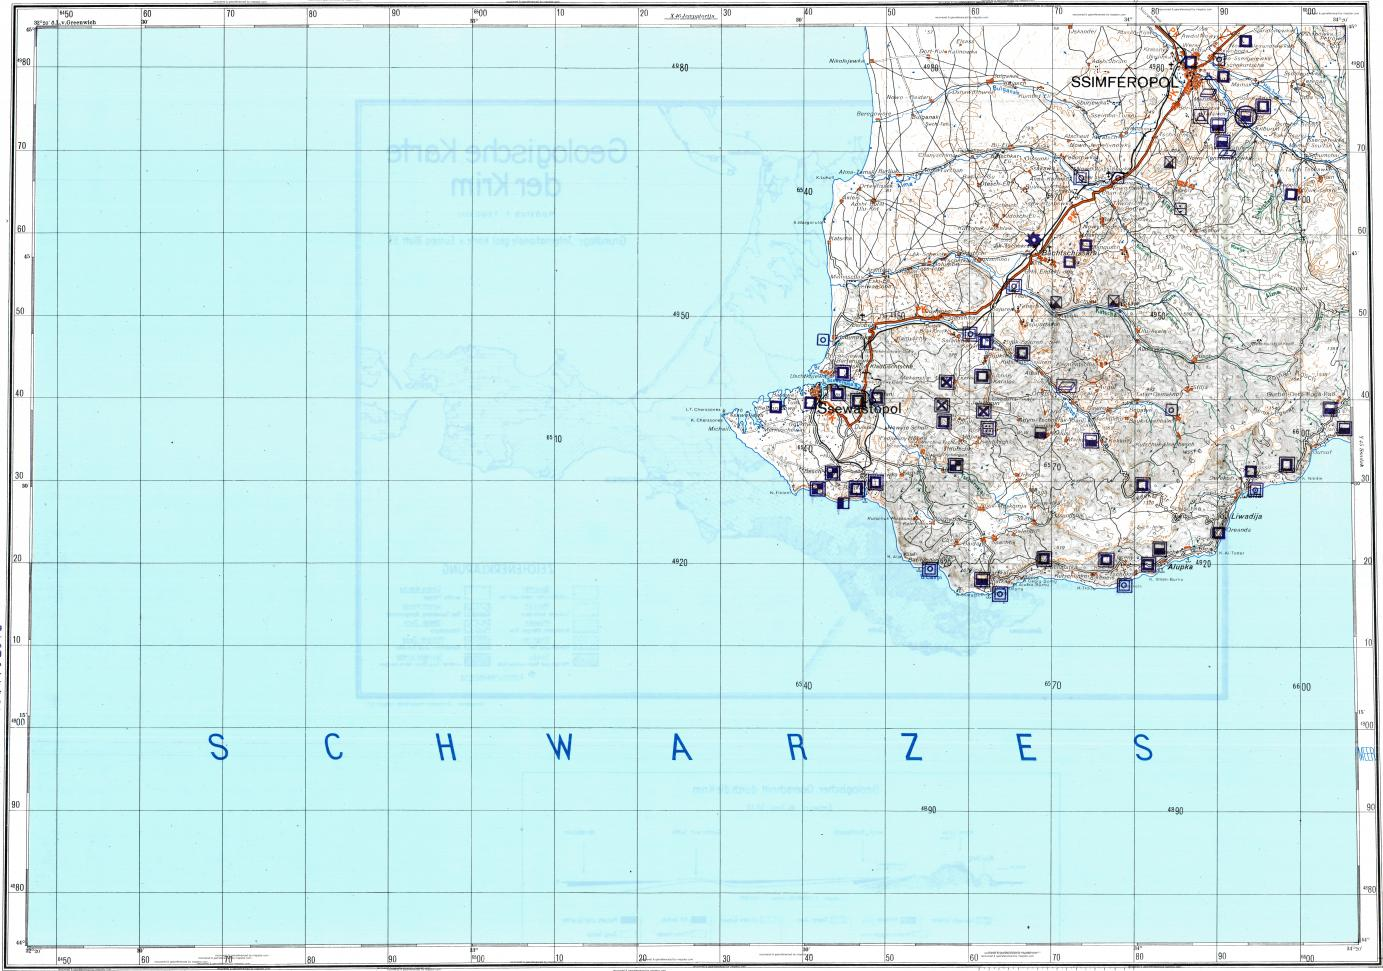 Download topographic map in area of Sevastopol Simferopol Yalta